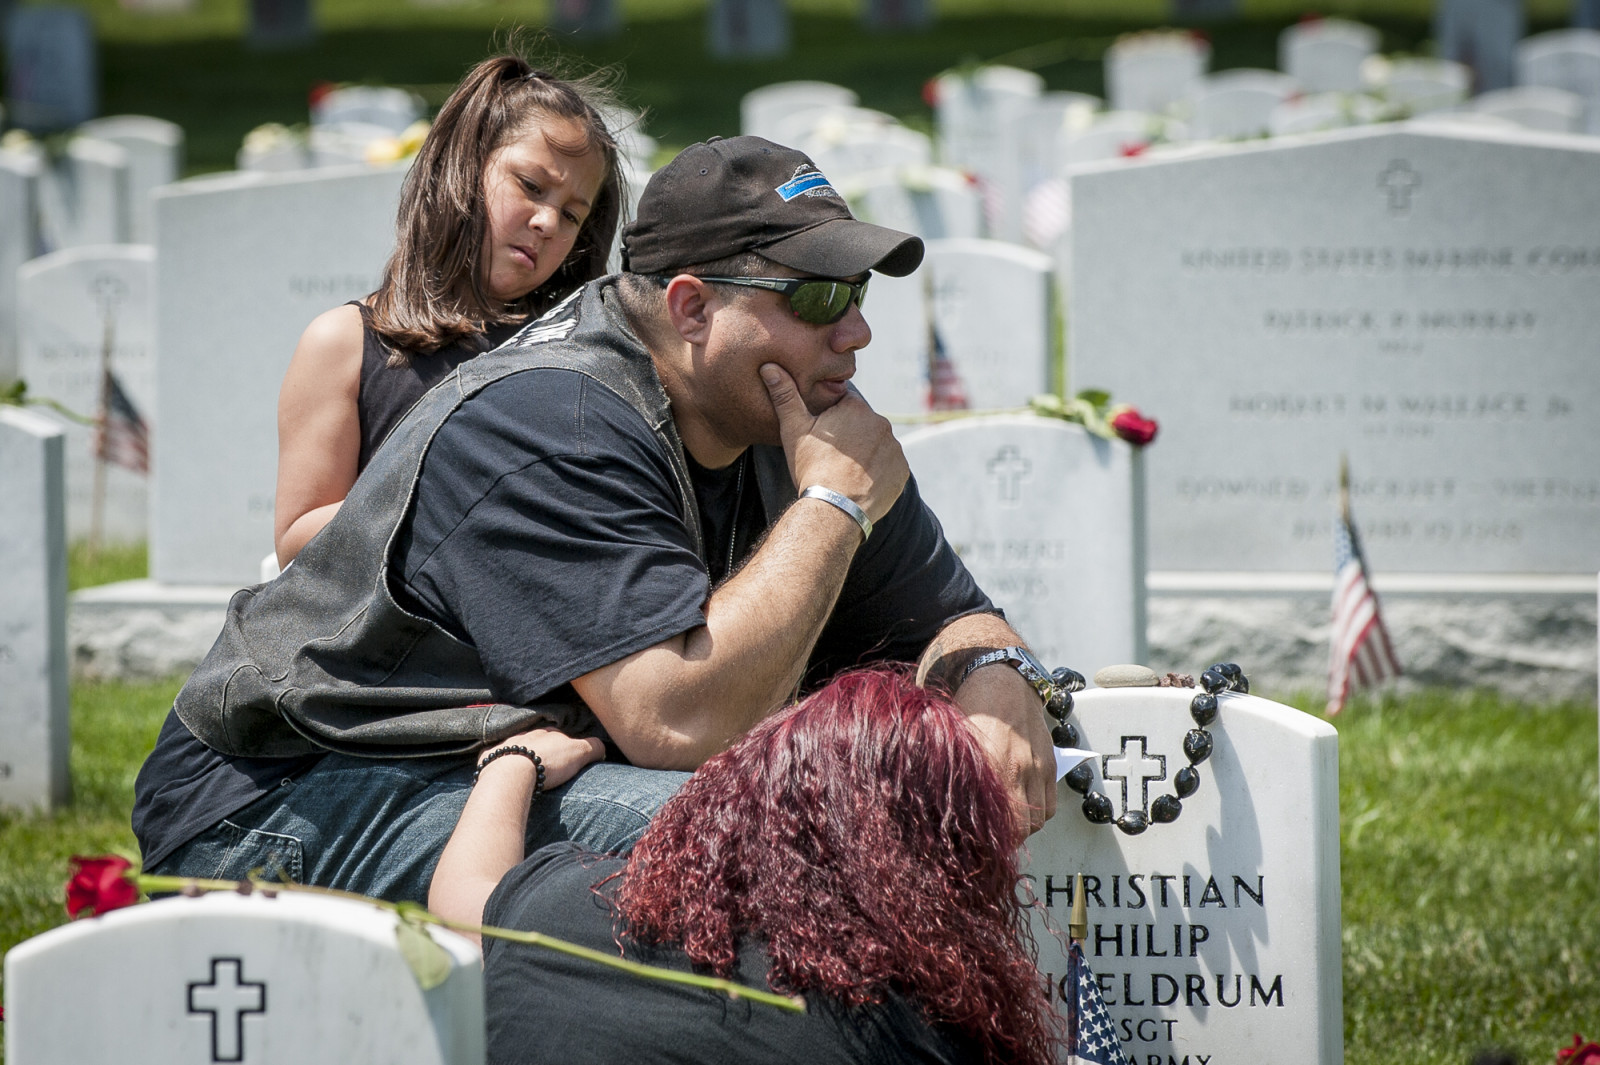 On Memorial Day, Alivin Amezquita is comforted by his wife Erika and daughter Myra as he visits the grave of a friend at Arlington National Cemetery in Arlington, Virginia, USA, on 25 May 2015. (Pete Marovich/ European PressPhoto Agency)